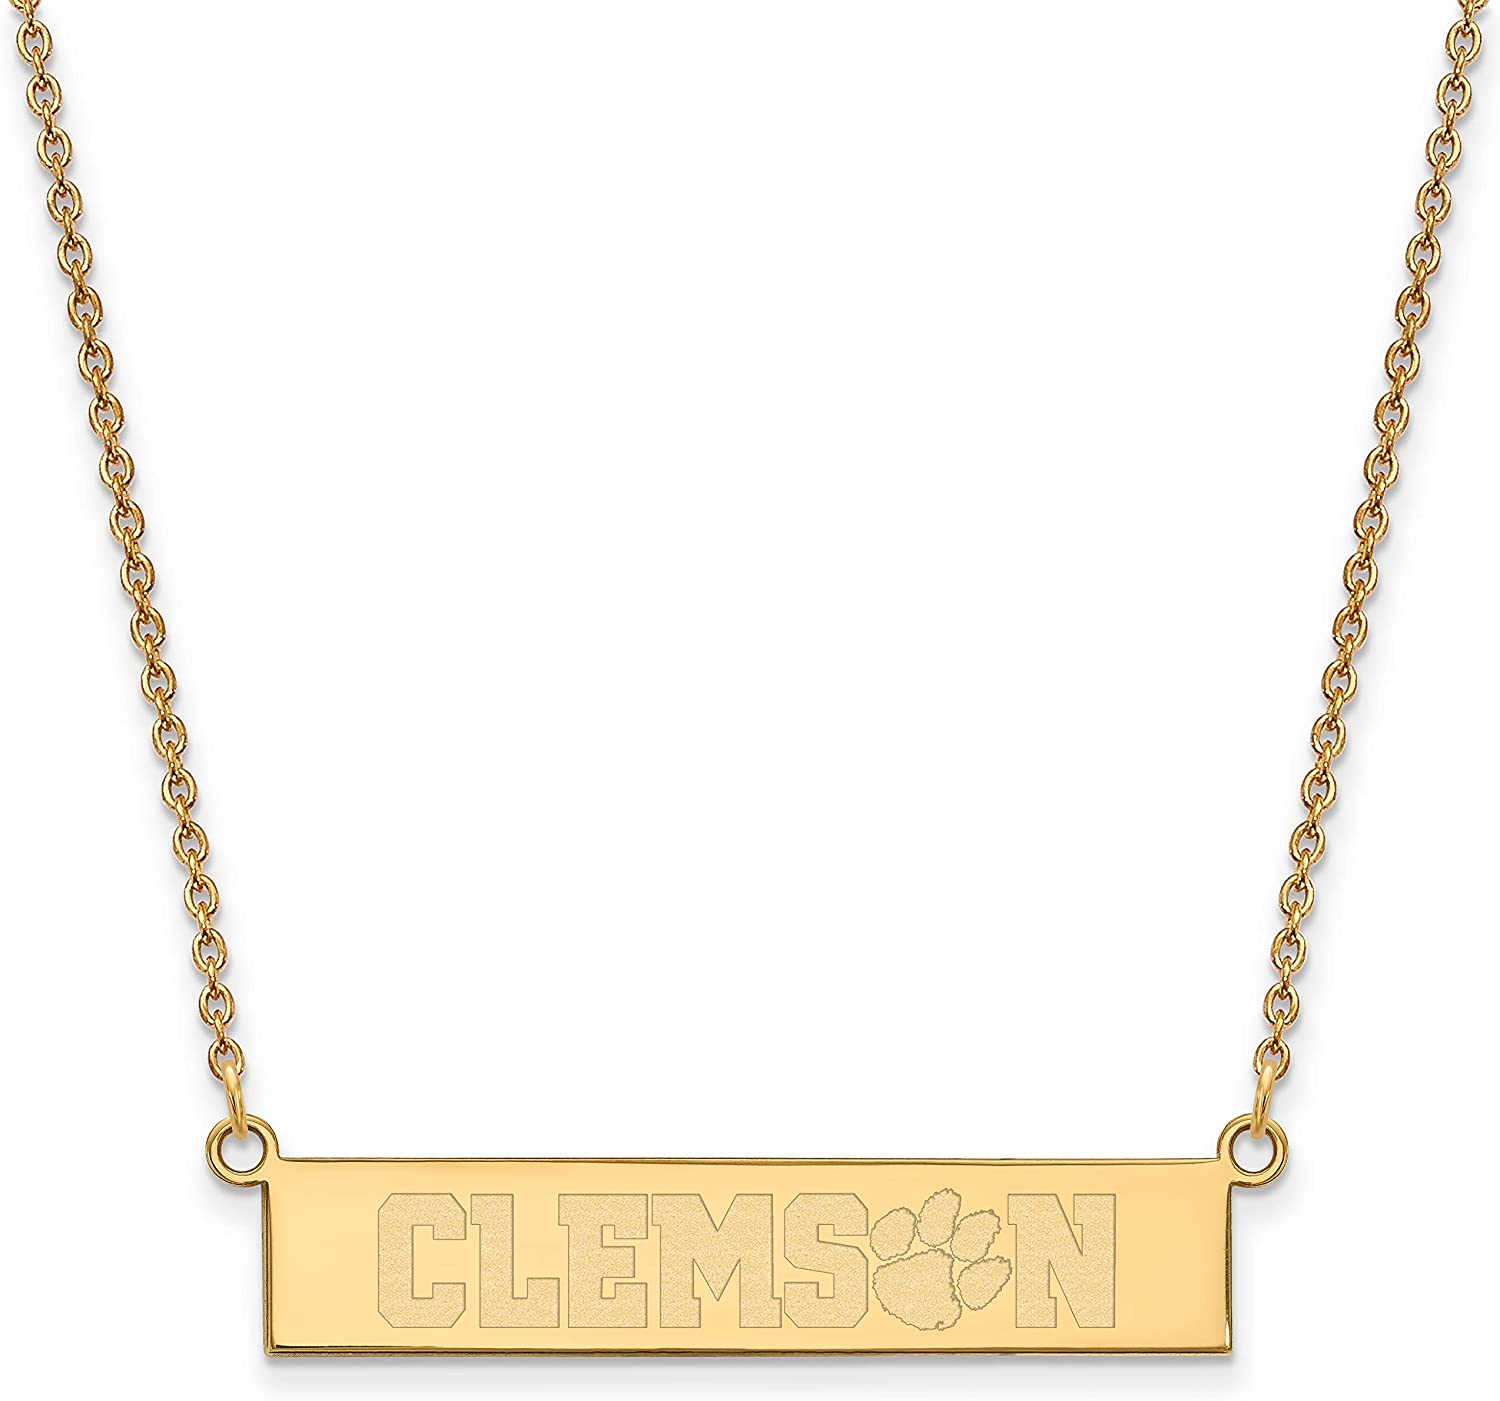 Clemson University Tigers School Name on Bar Pendant Necklace in Gold Plated Sterling Silver18 Inches